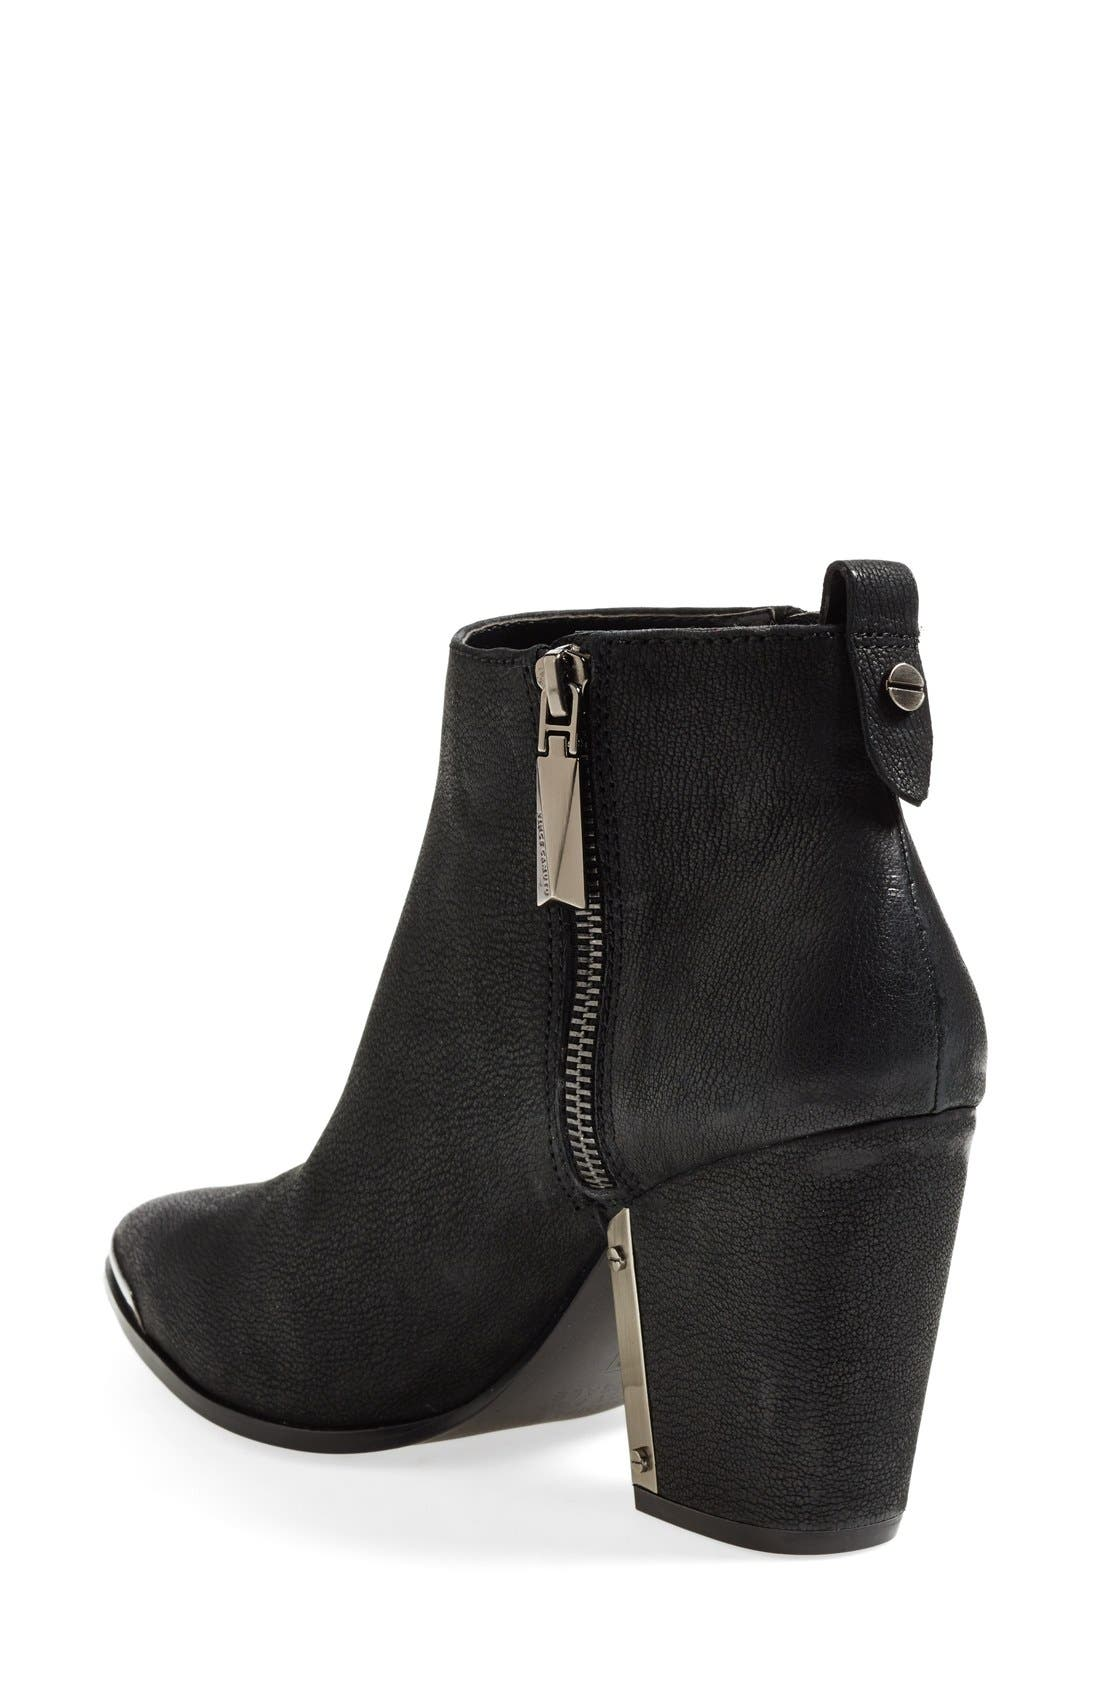 'Amori' Pointy Toe Leather Bootie,                             Alternate thumbnail 4, color,                             003